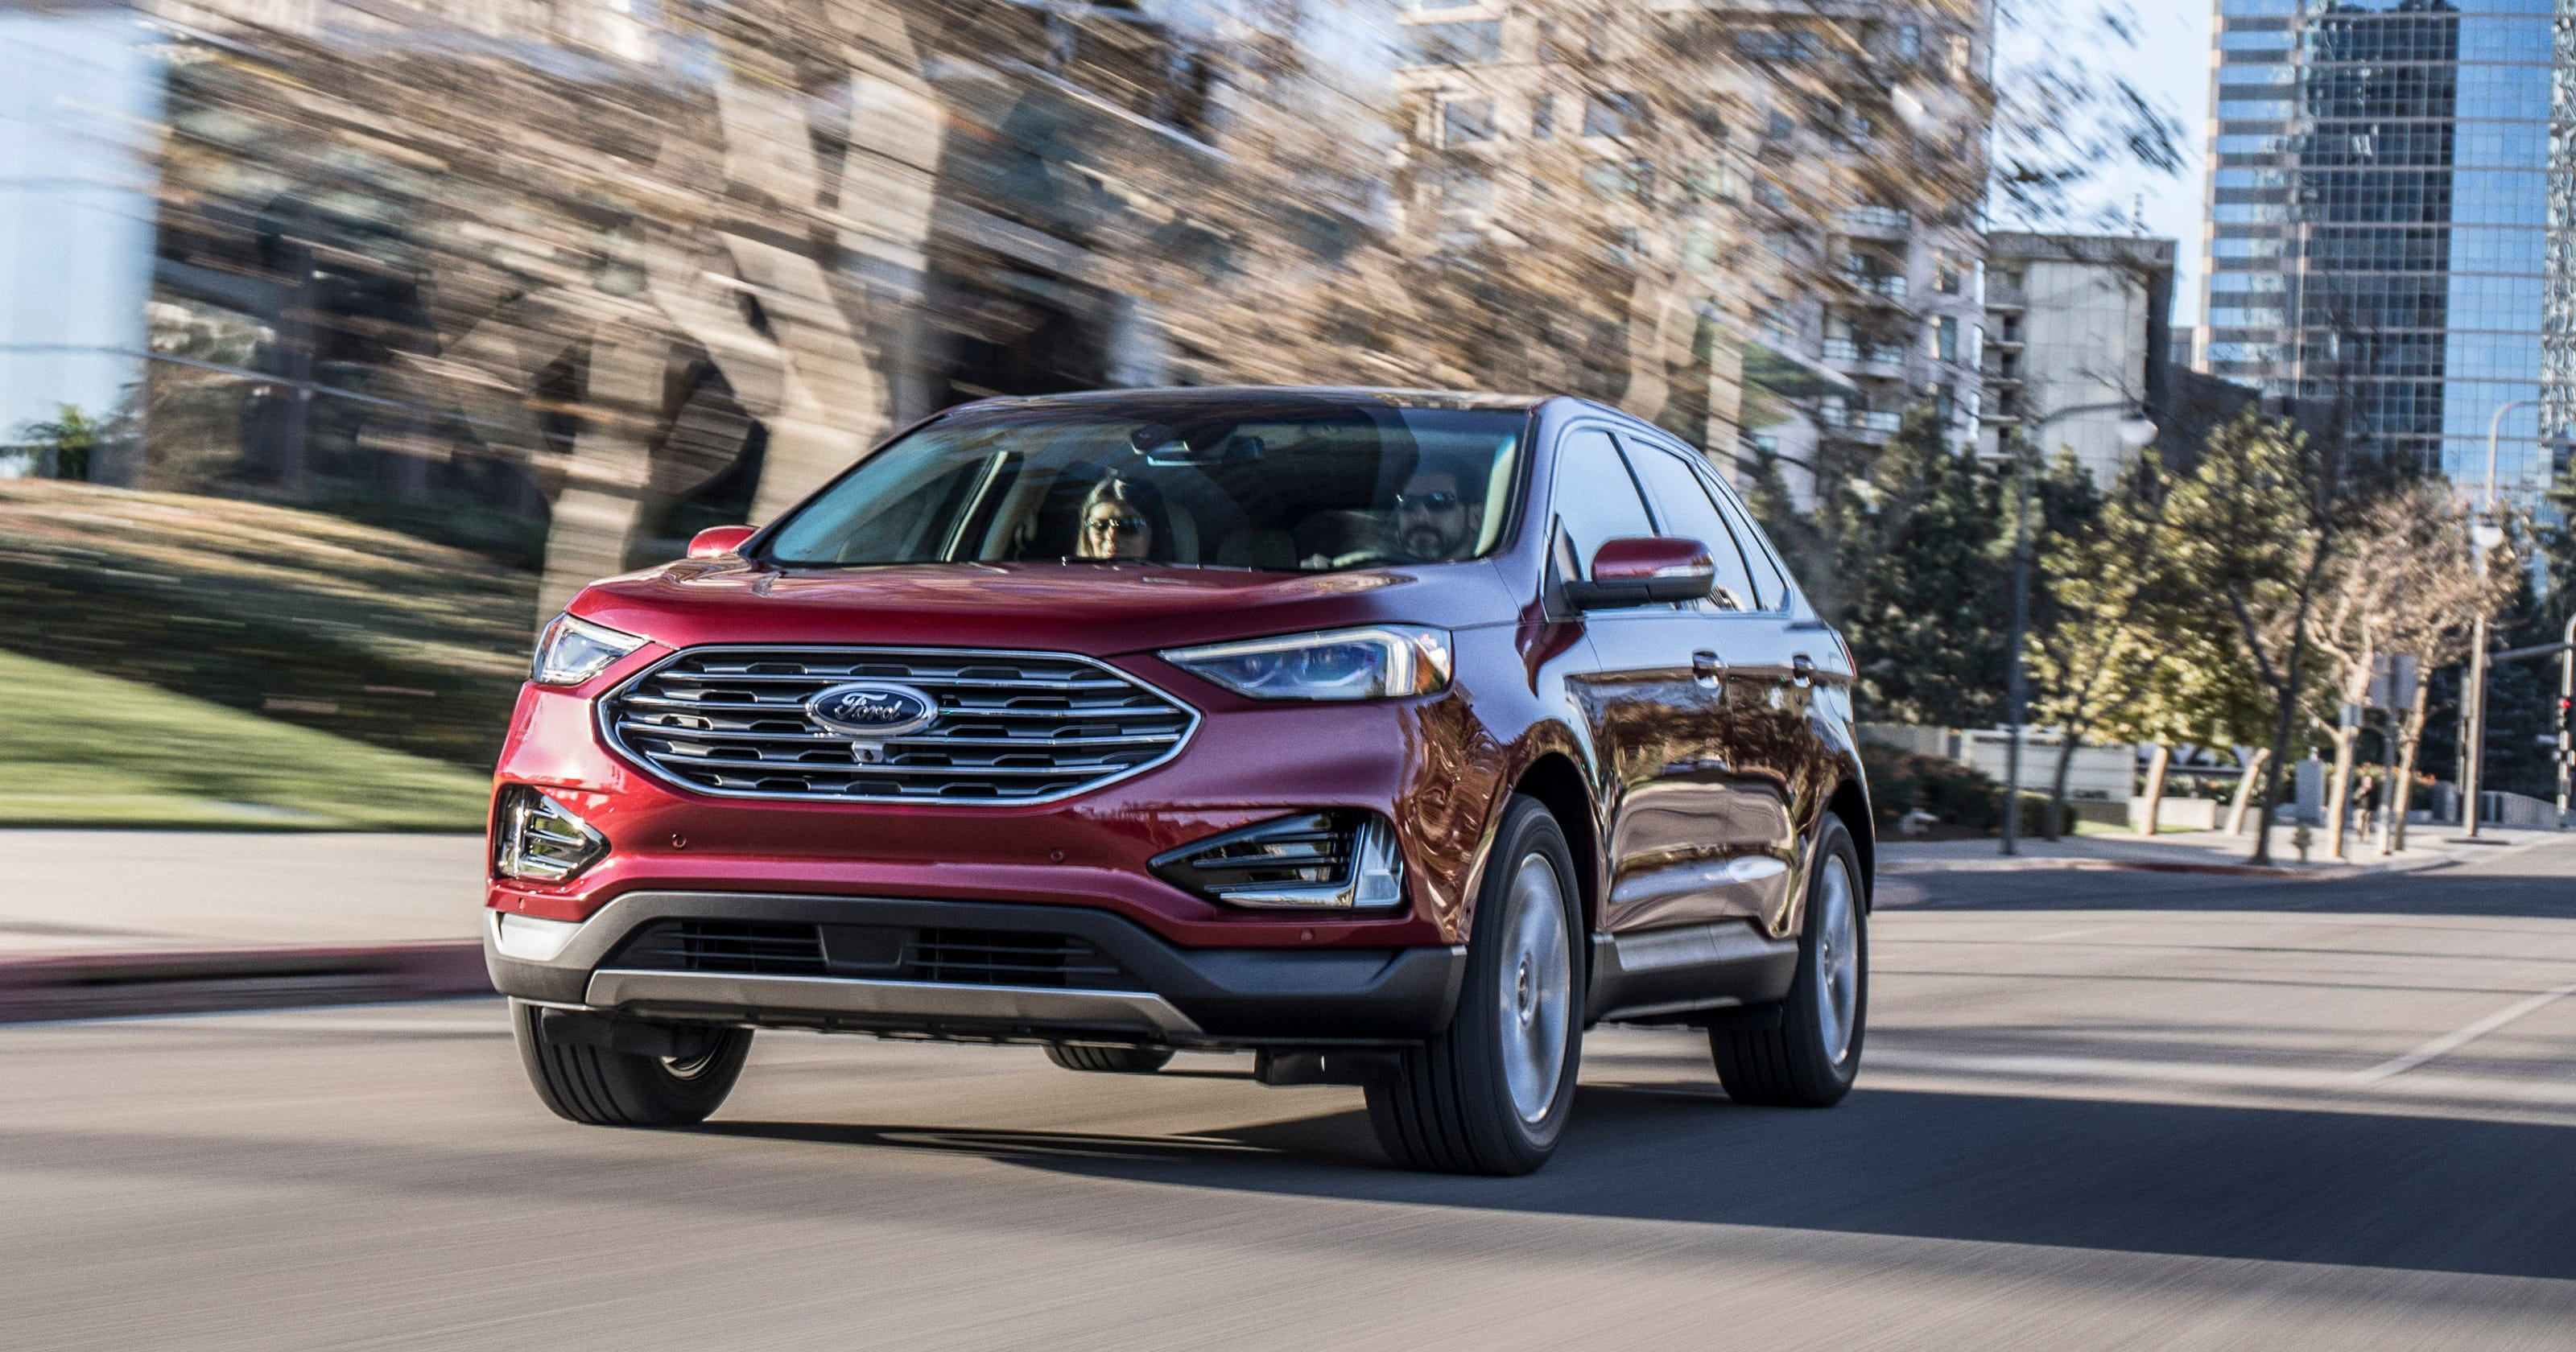 New ford edge suv unveiled in market strongly driven by women